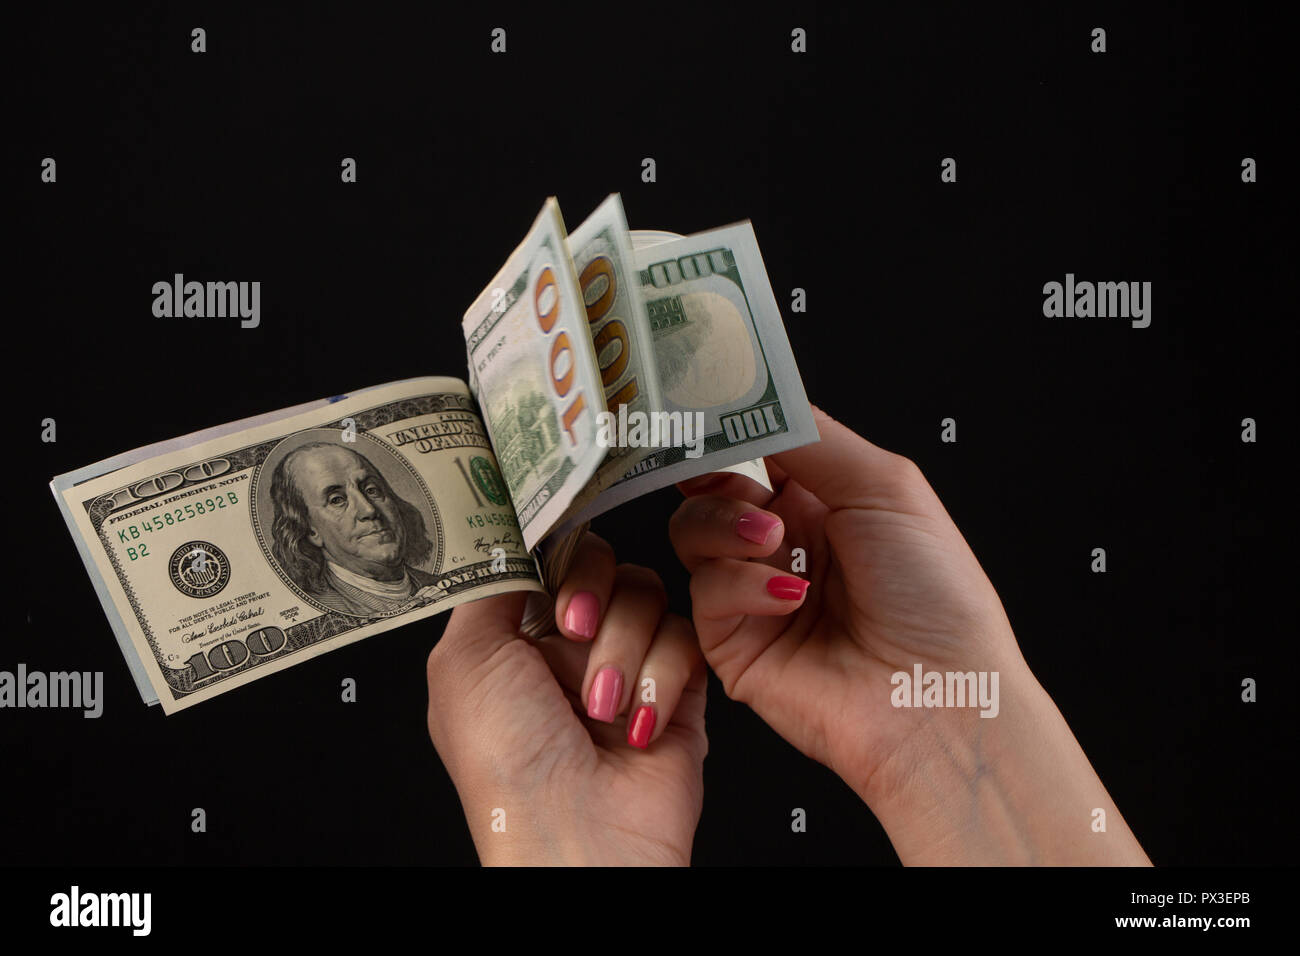 Hand giving money, United States Dollars or USD. Hands holding Banknotes. Hands holding a dollar 100 bill on black background - Stock Image